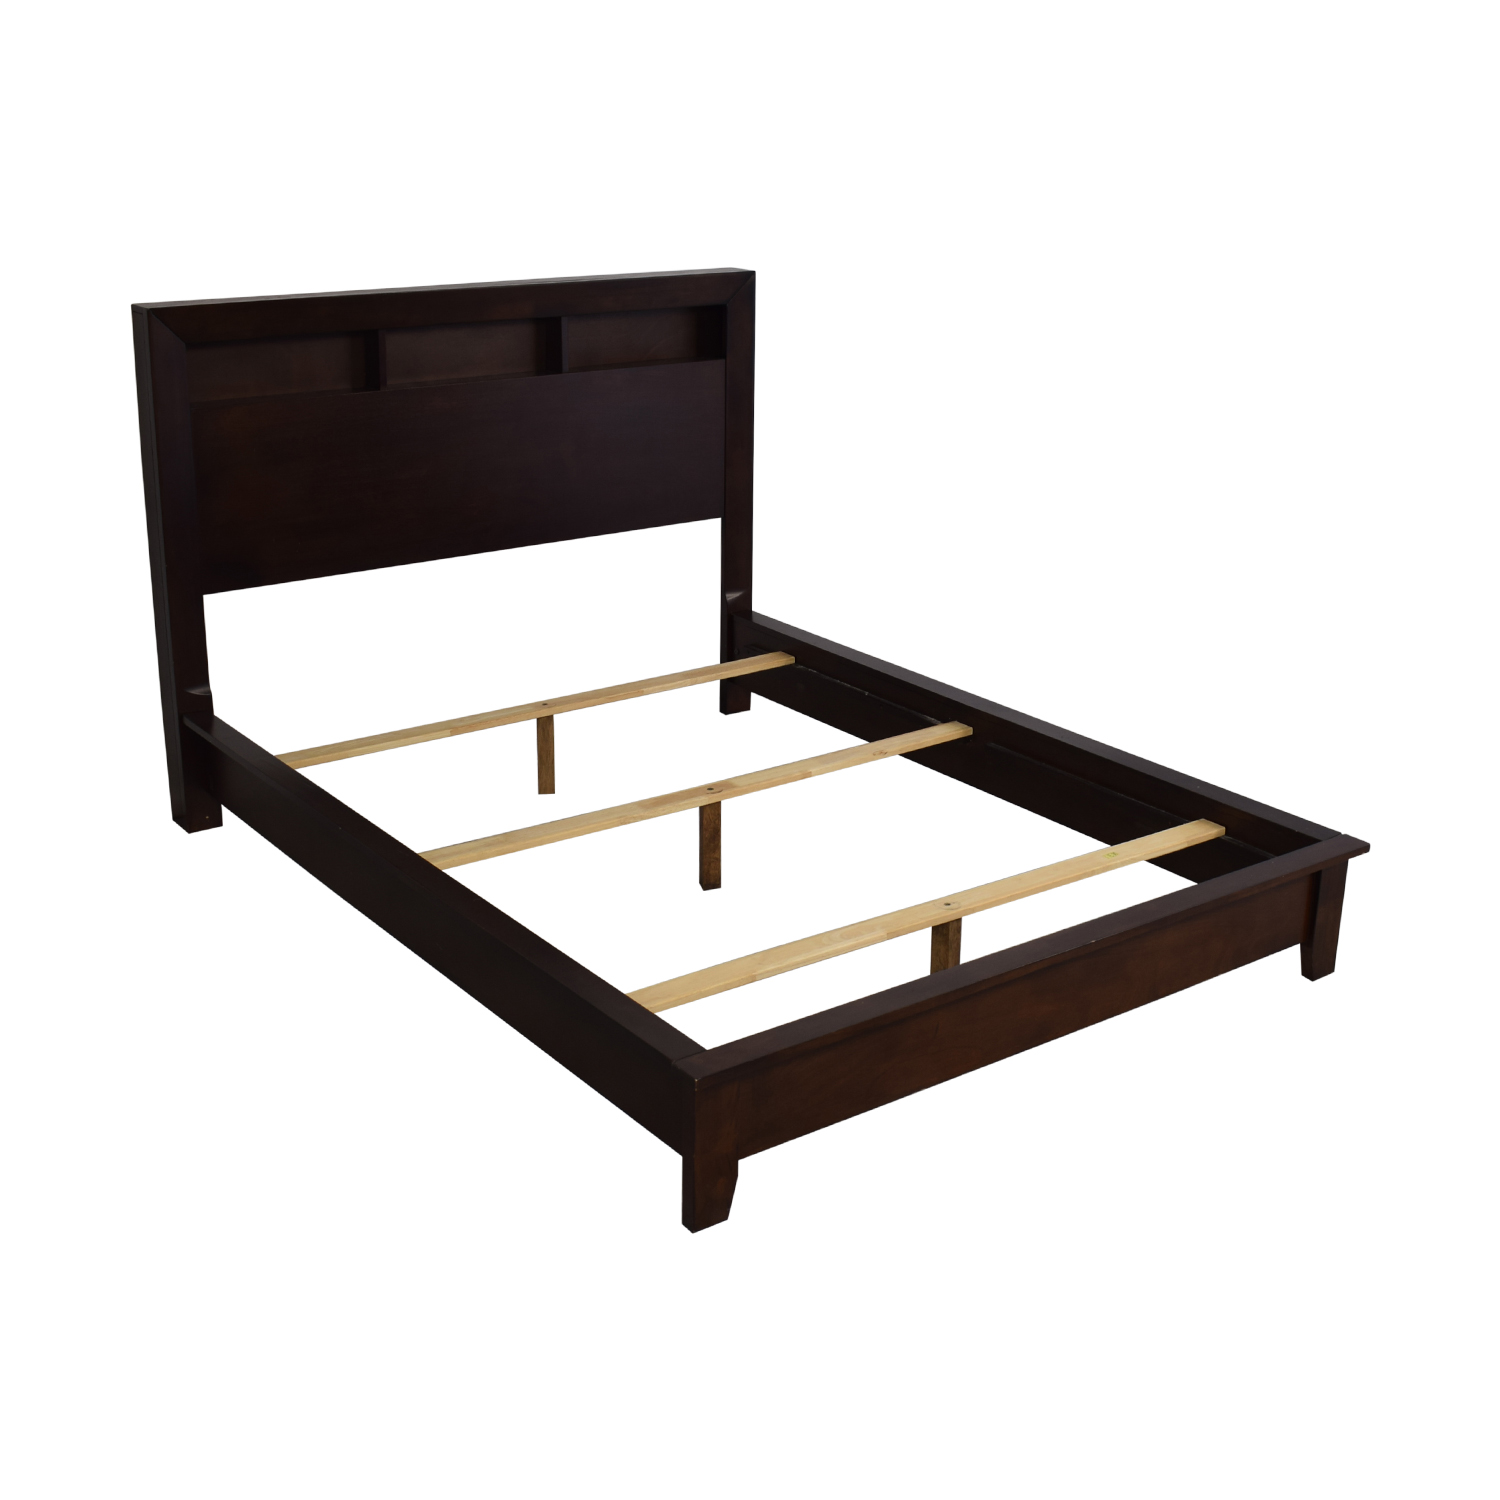 buy American Furniture Queen Bed Frame American Furniture Warehouse